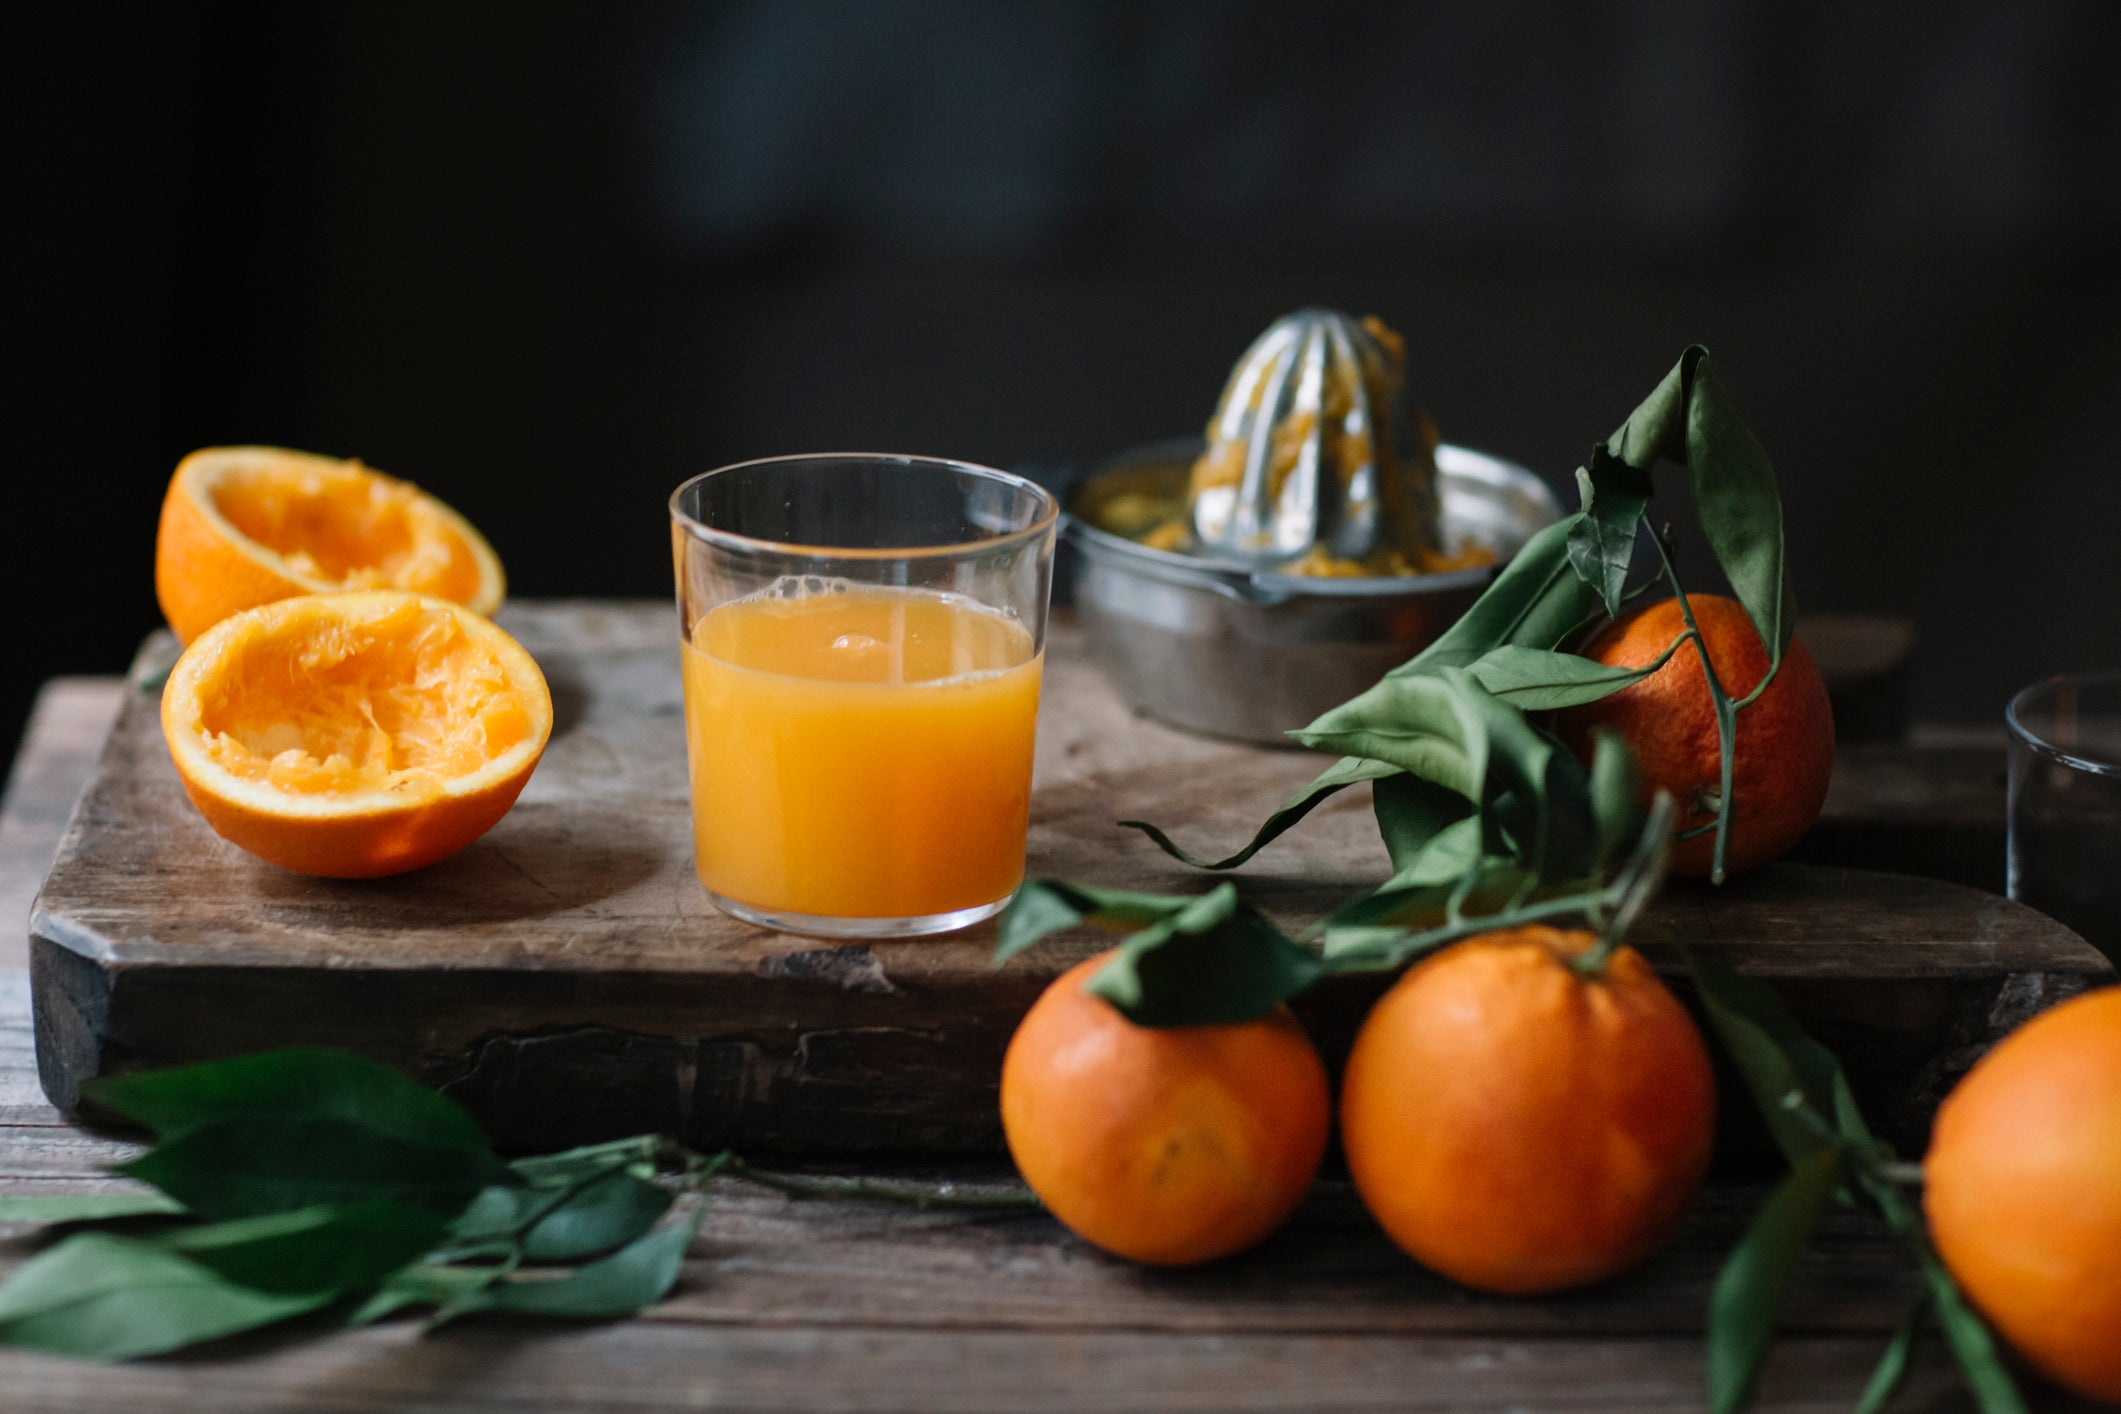 Oranges and fresh squeezed orange juice packed with vitamin C